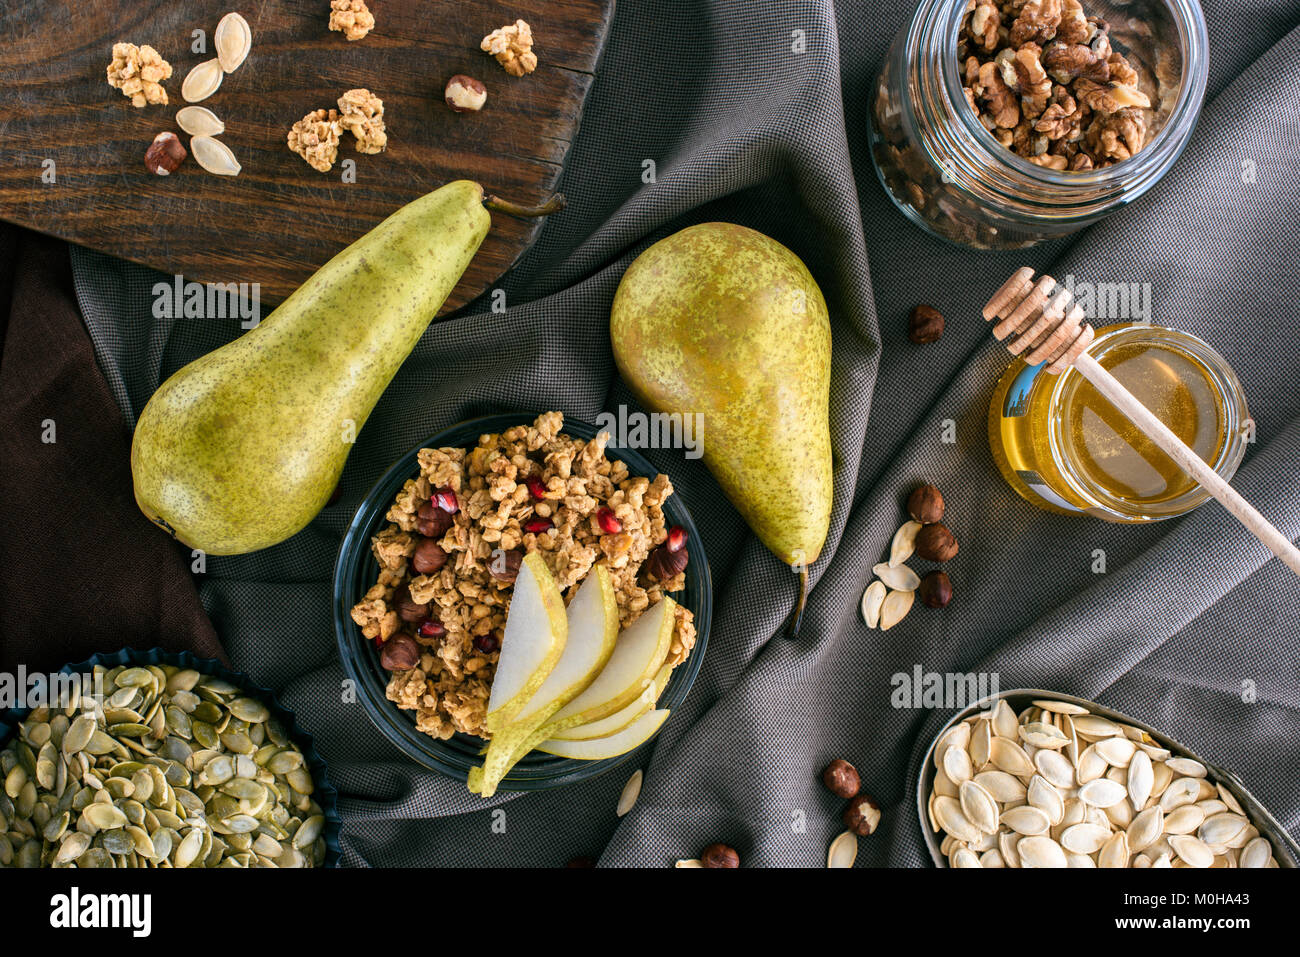 top view of pears, honey and homemade granola on tabletop - Stock Image